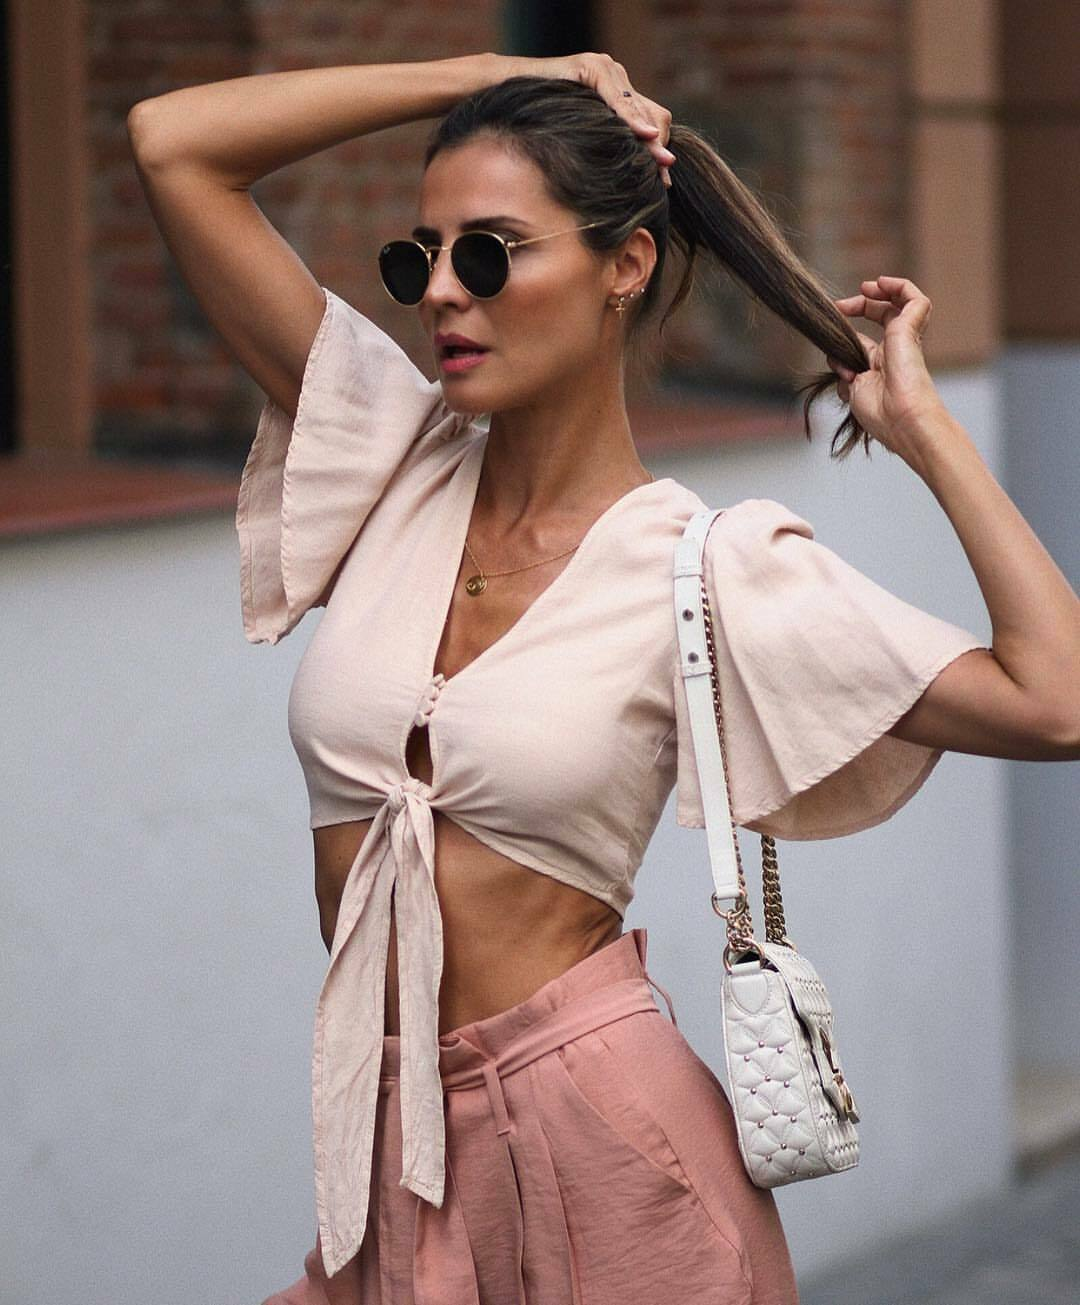 Zara Knotted Rustic Crop Top Rosa Nude Linen Womans Small BNWT Blogger 6929 200